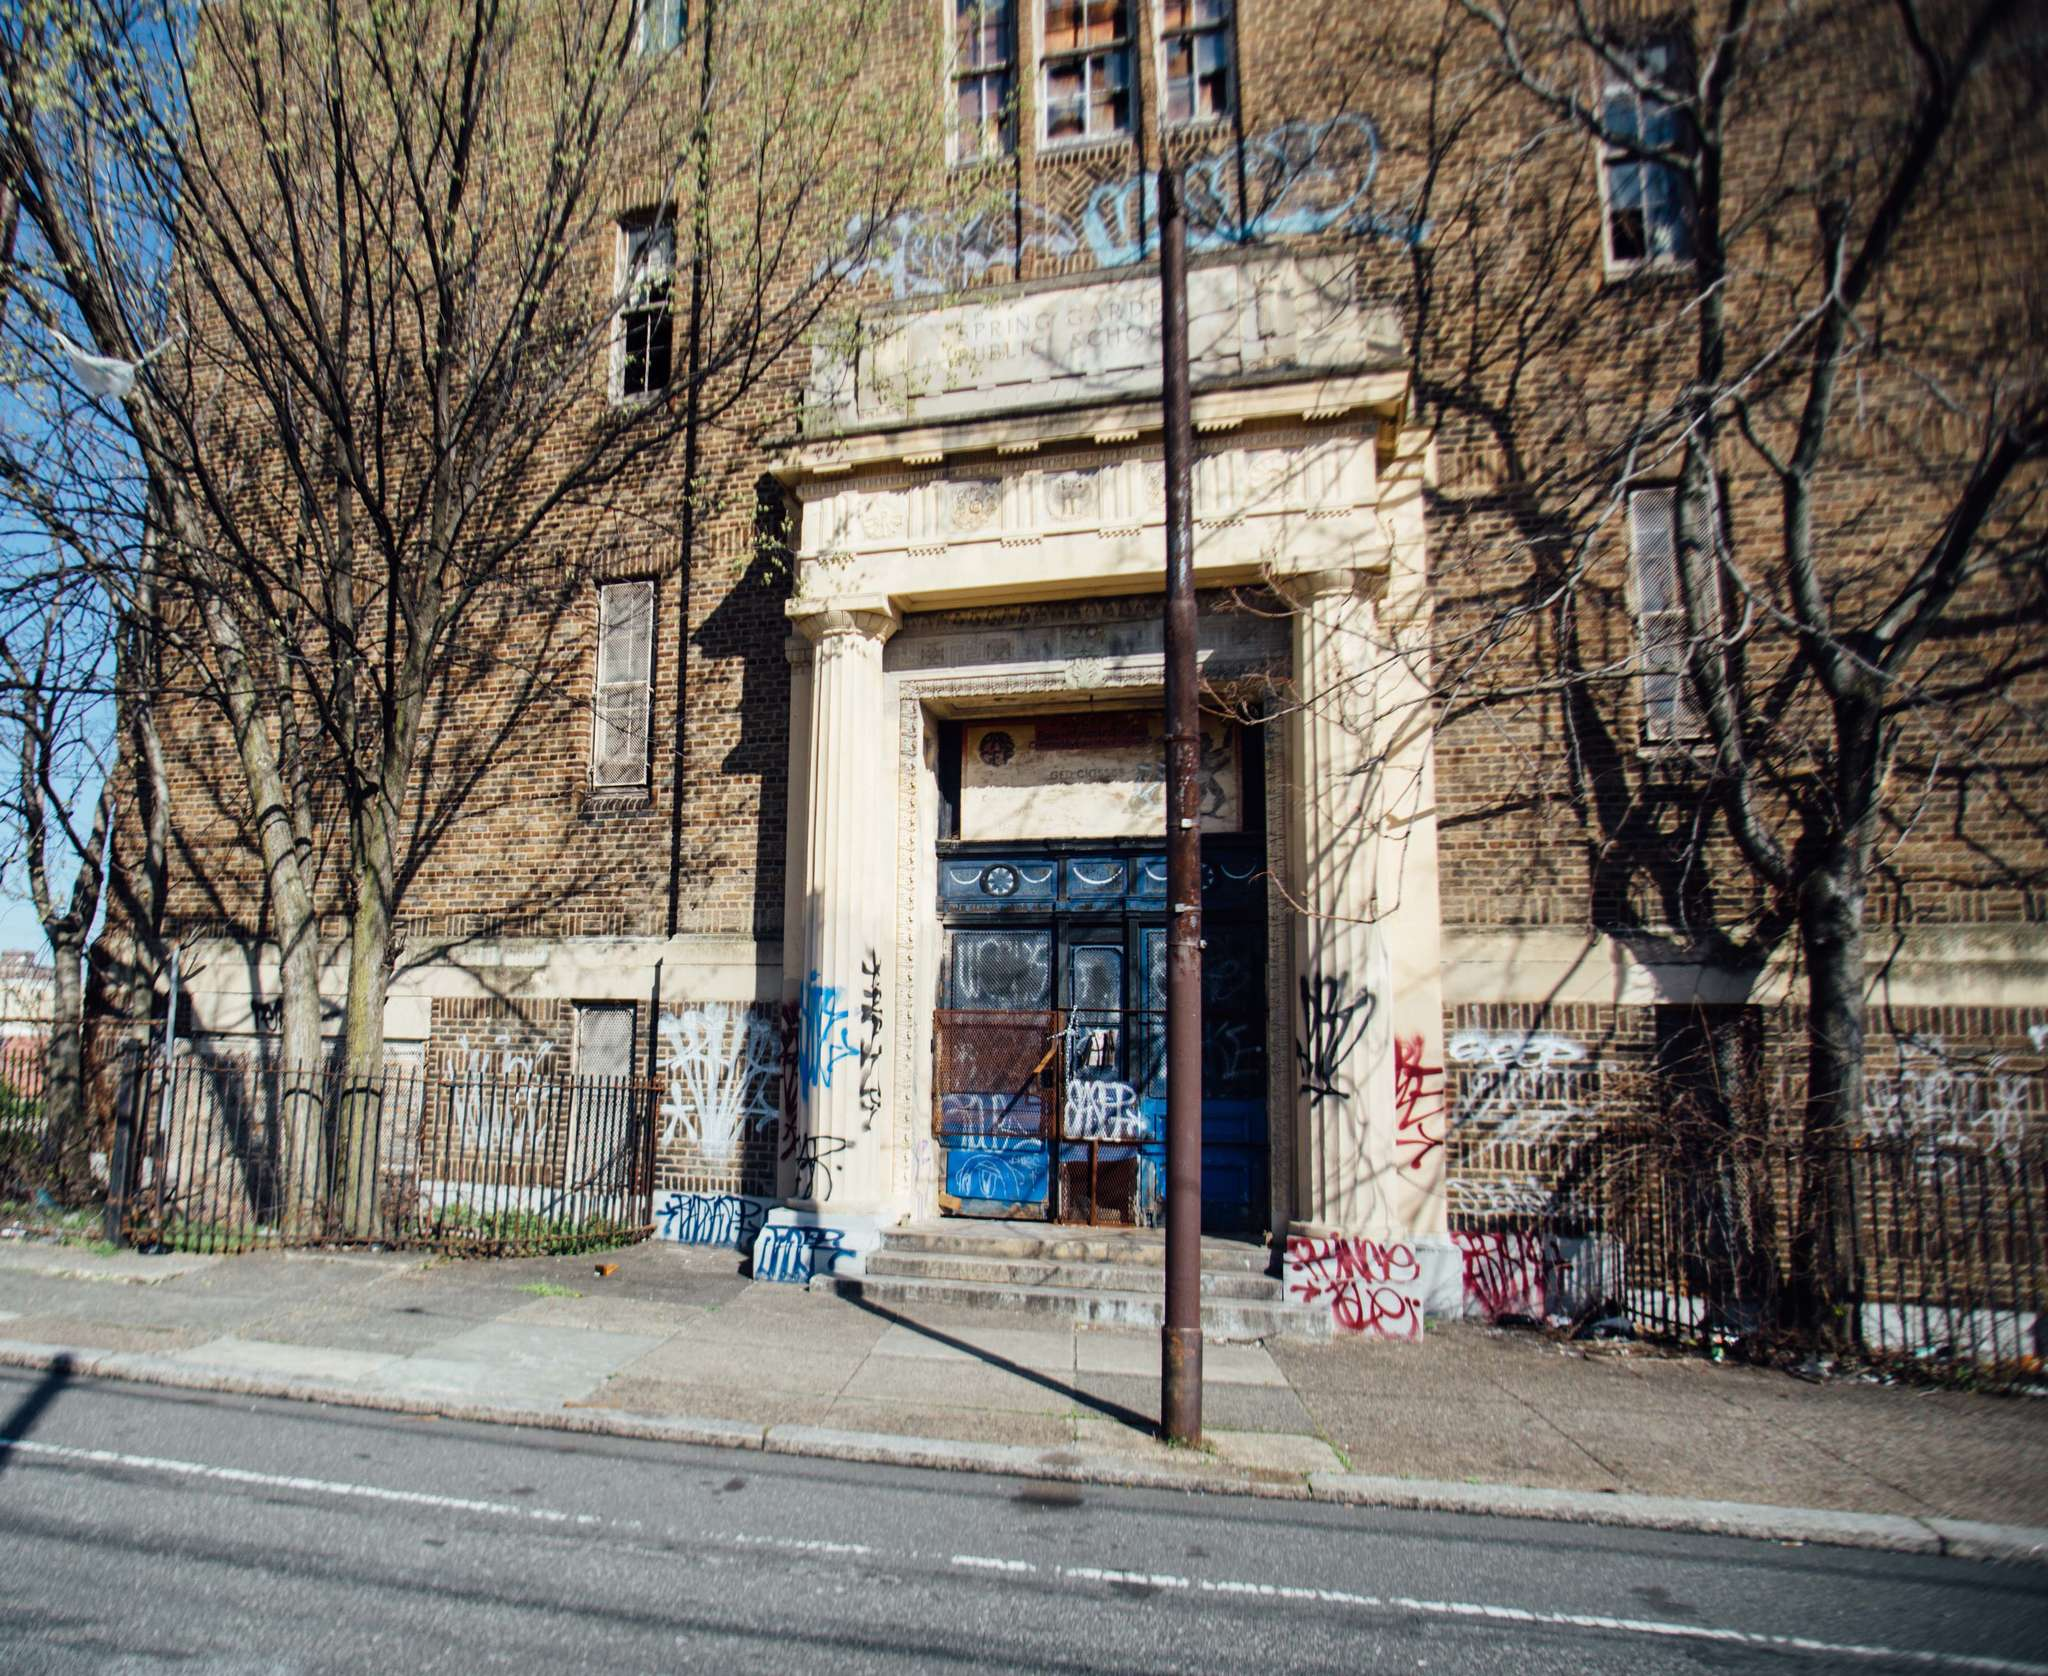 The front of the former Spring Garden School on 12th Street in Philadelphia. The 1920s three-story brick building features a limestone entrance surround and parapet as well as decorative tile. The school has been out of service for most of the last 40 years.